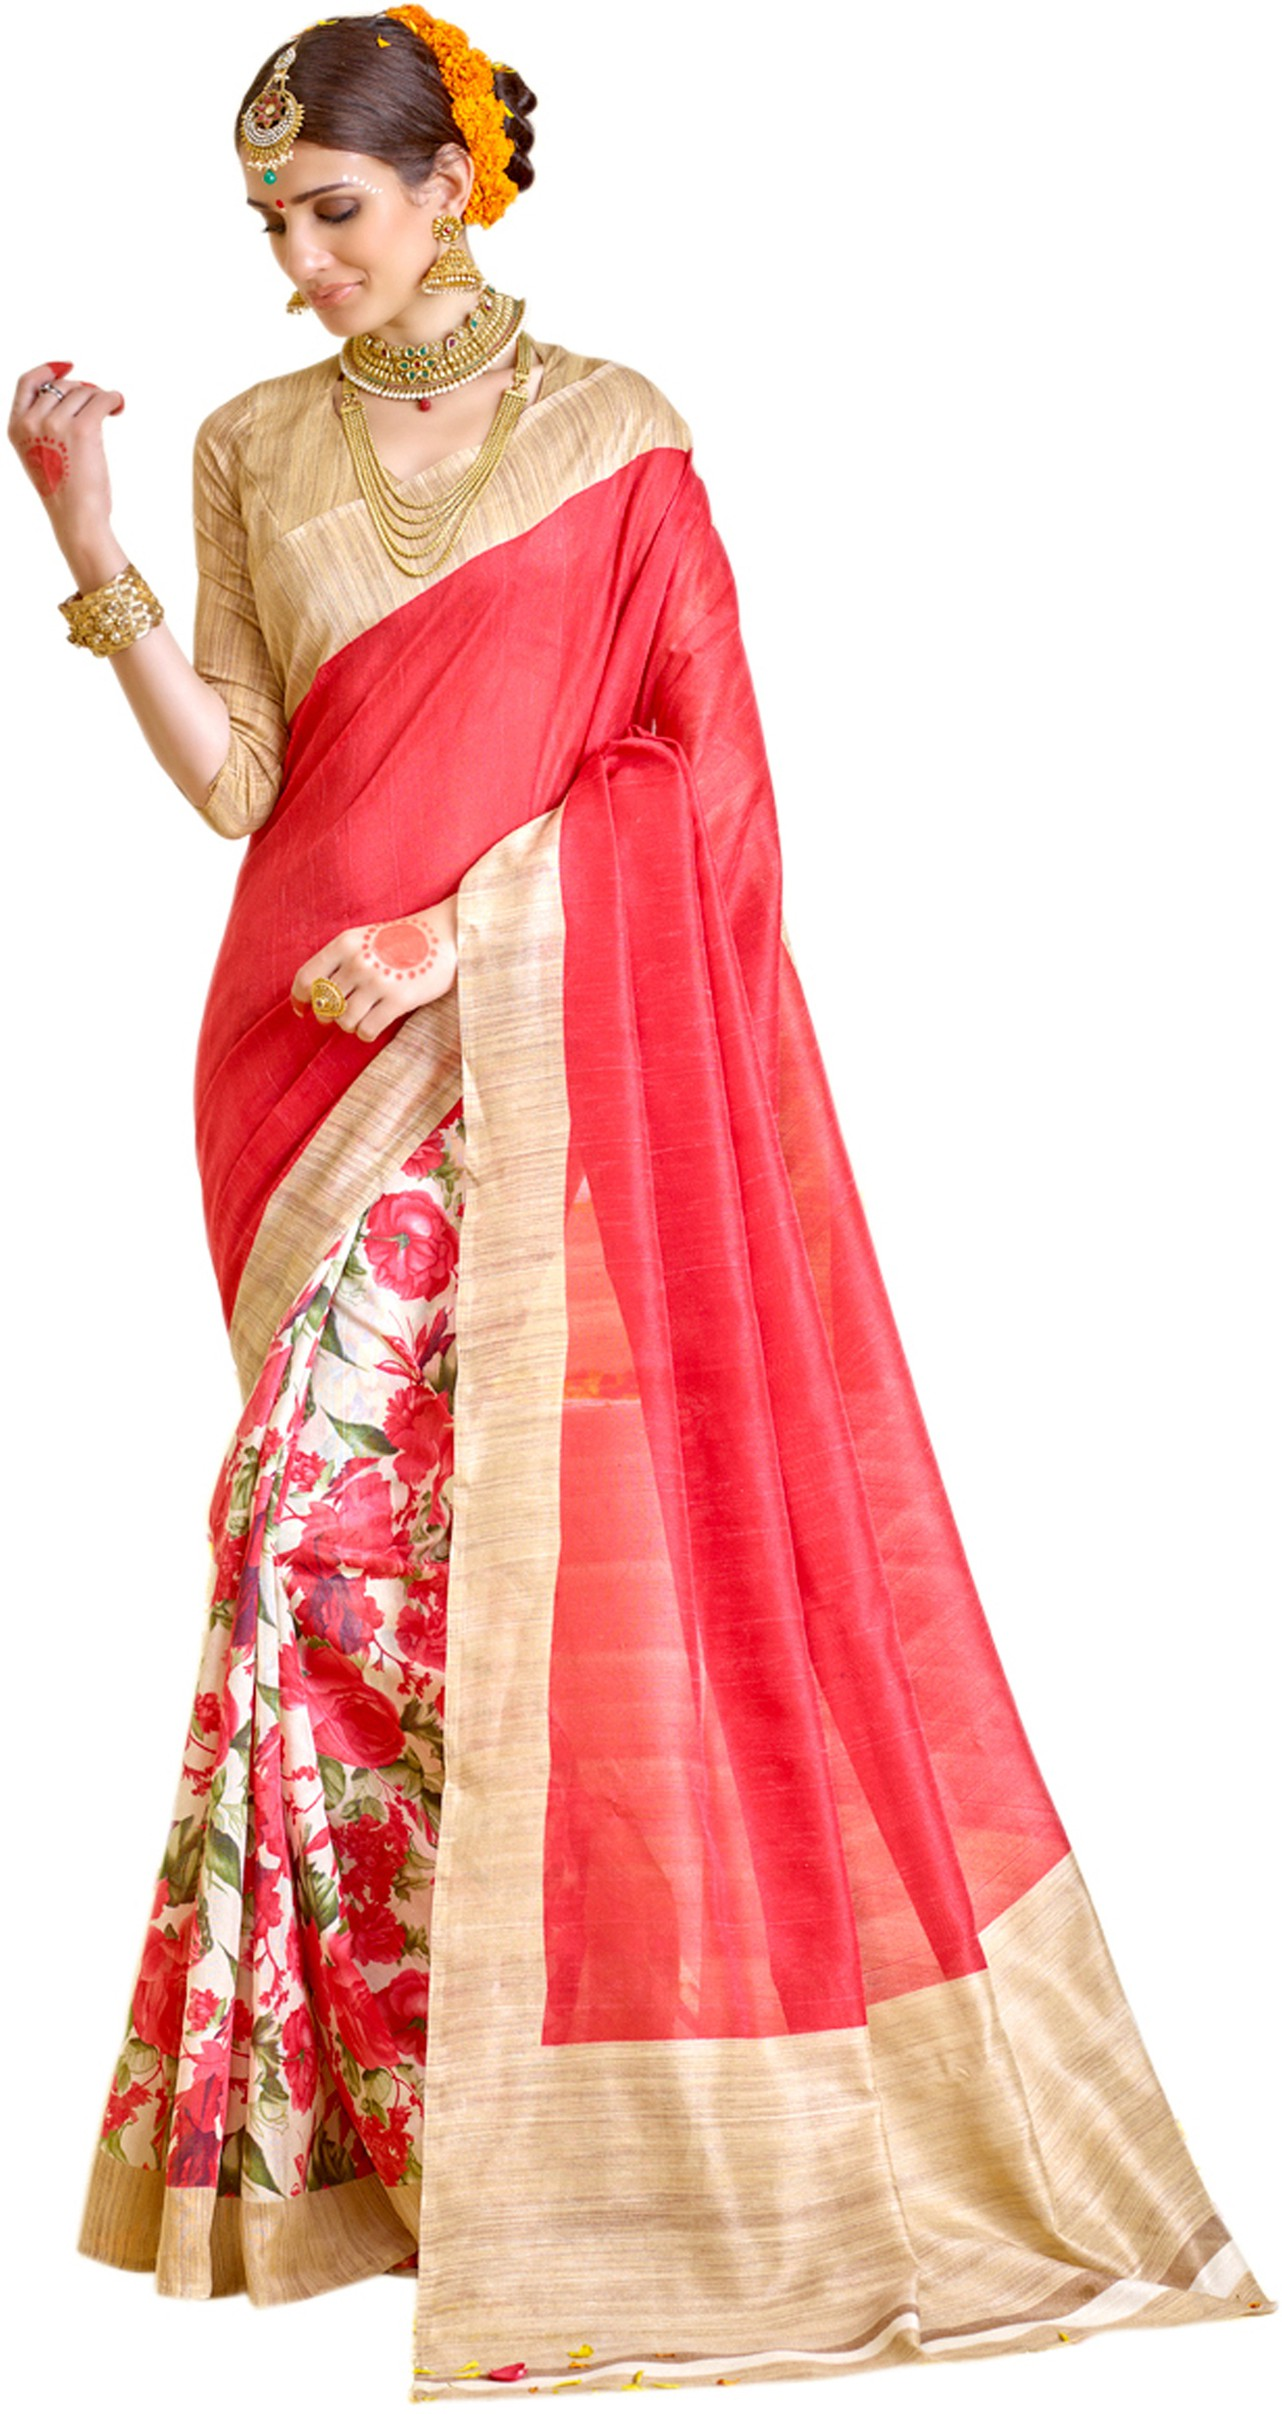 Flipkart - Sarees and Dress Materials  Minimum 70% Off